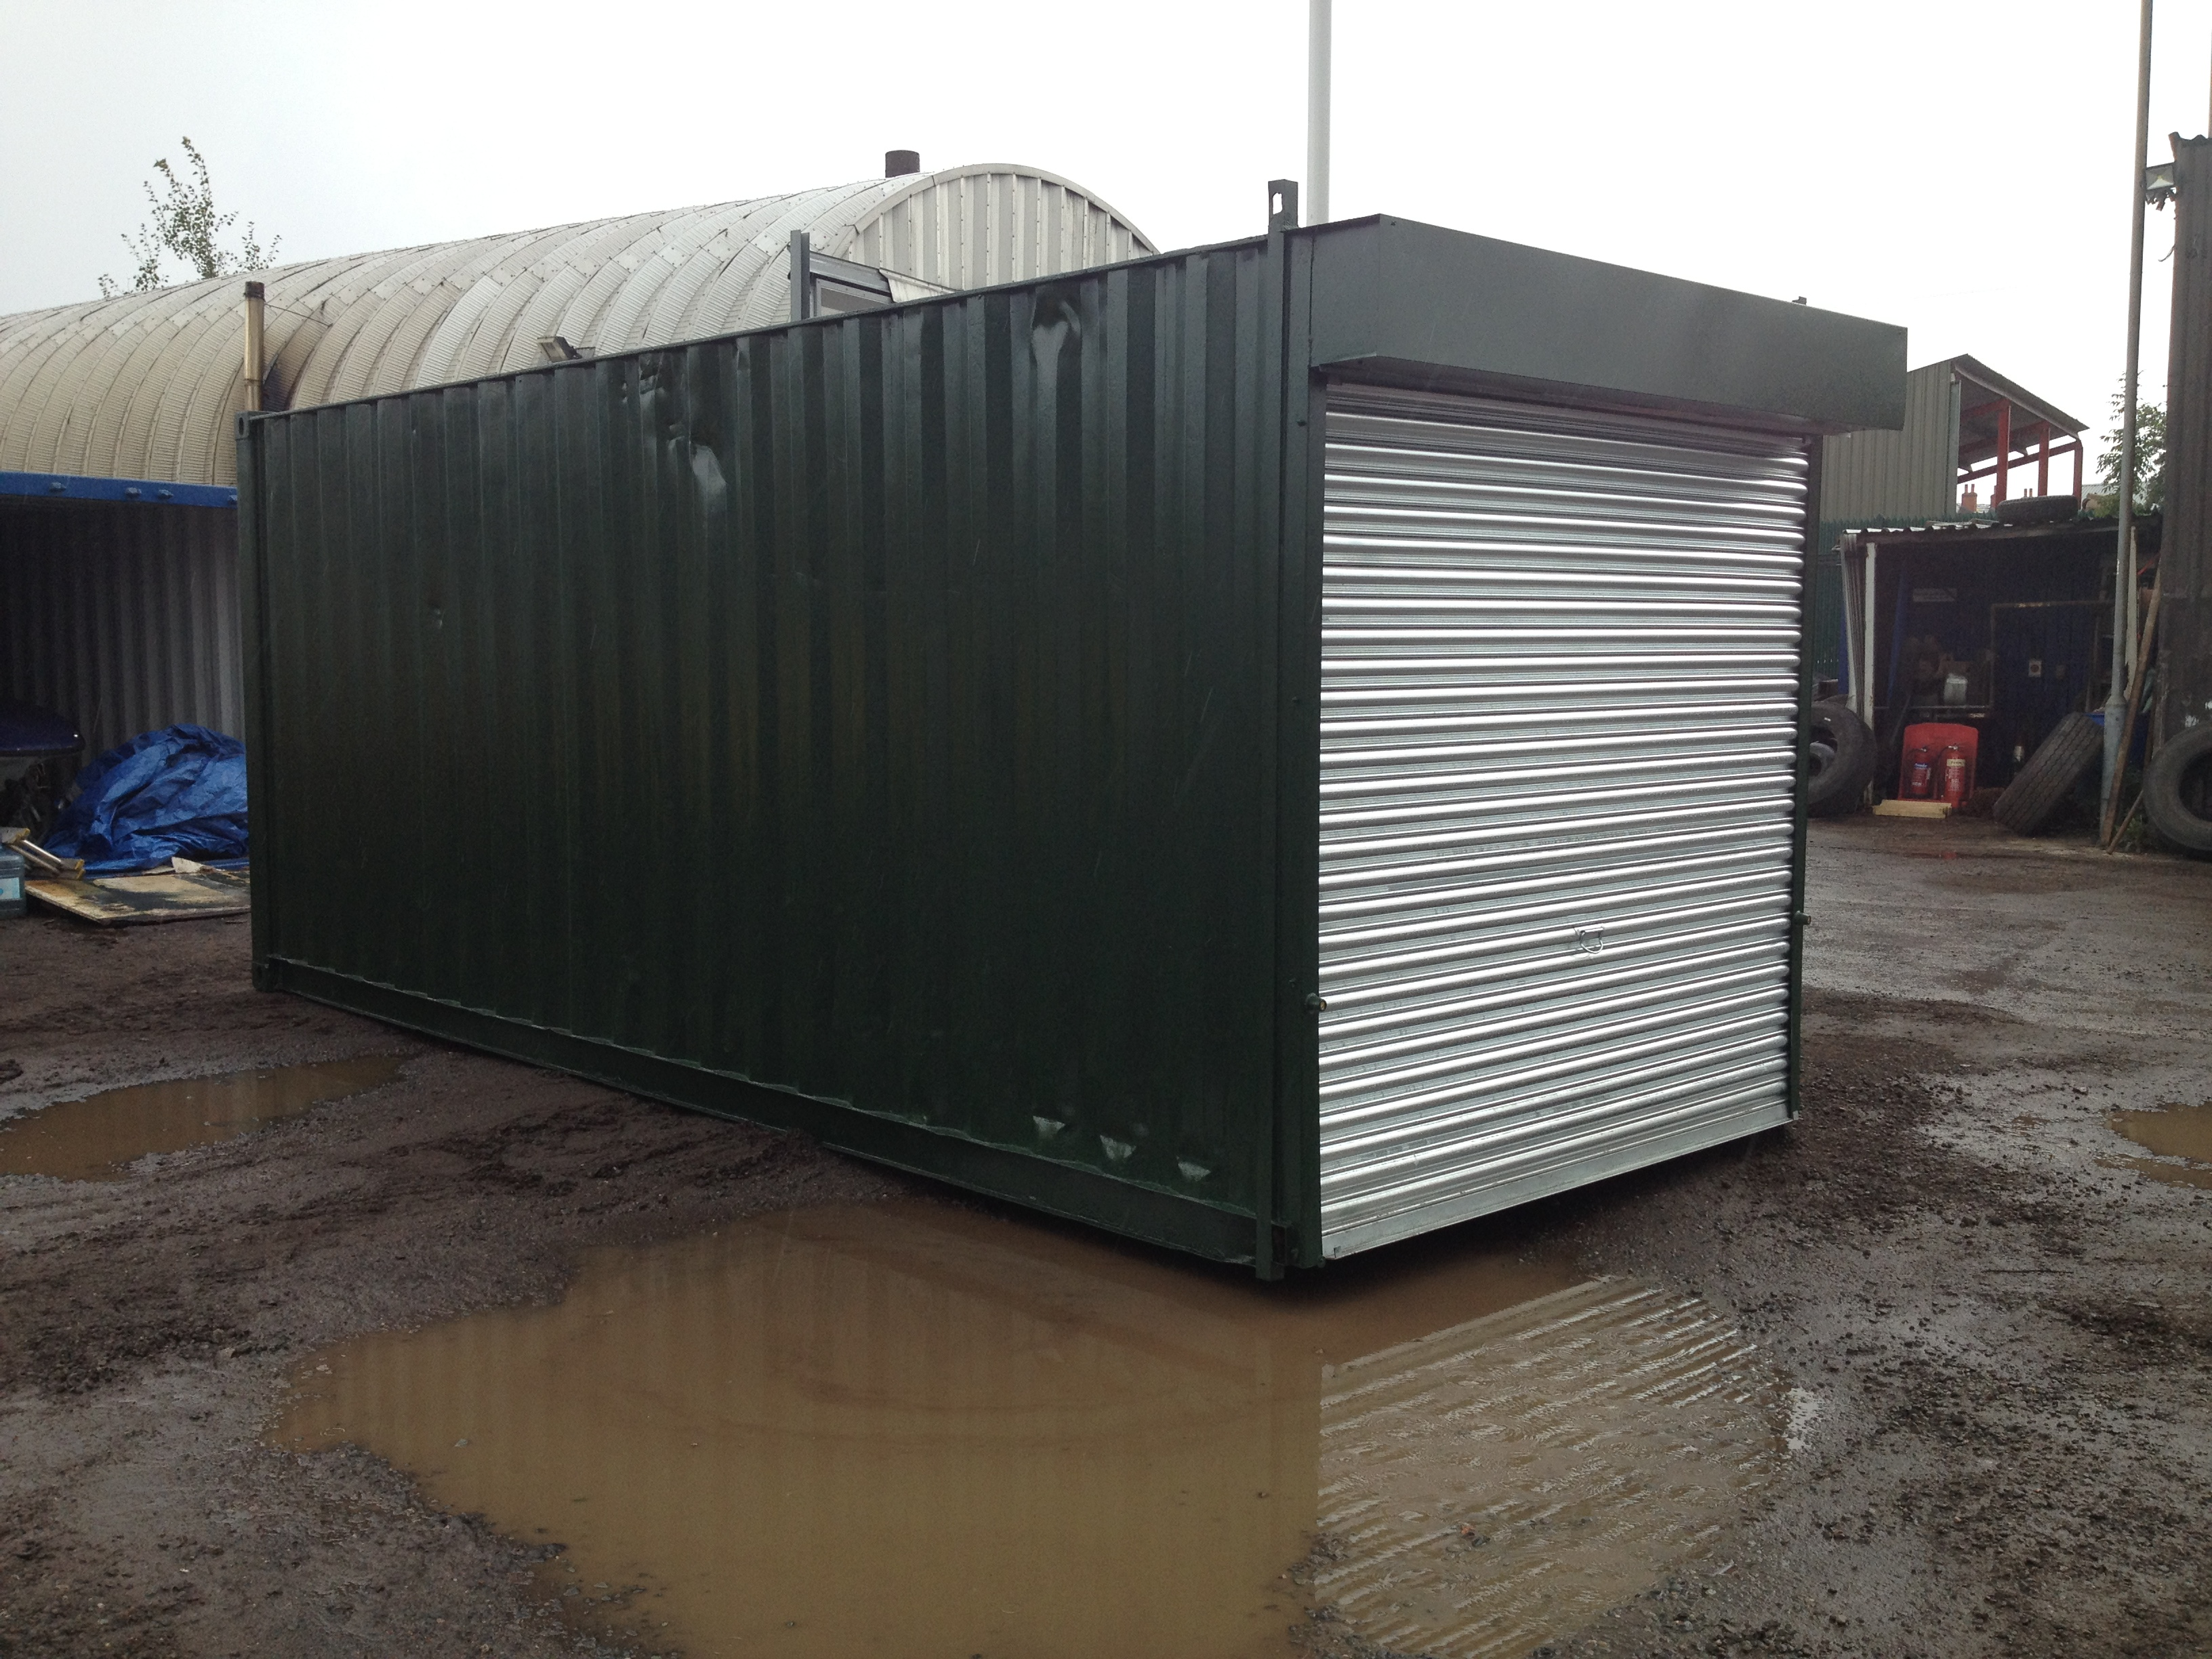 20ft x 8ft Green Used Storage Container Roller Shutter Door www